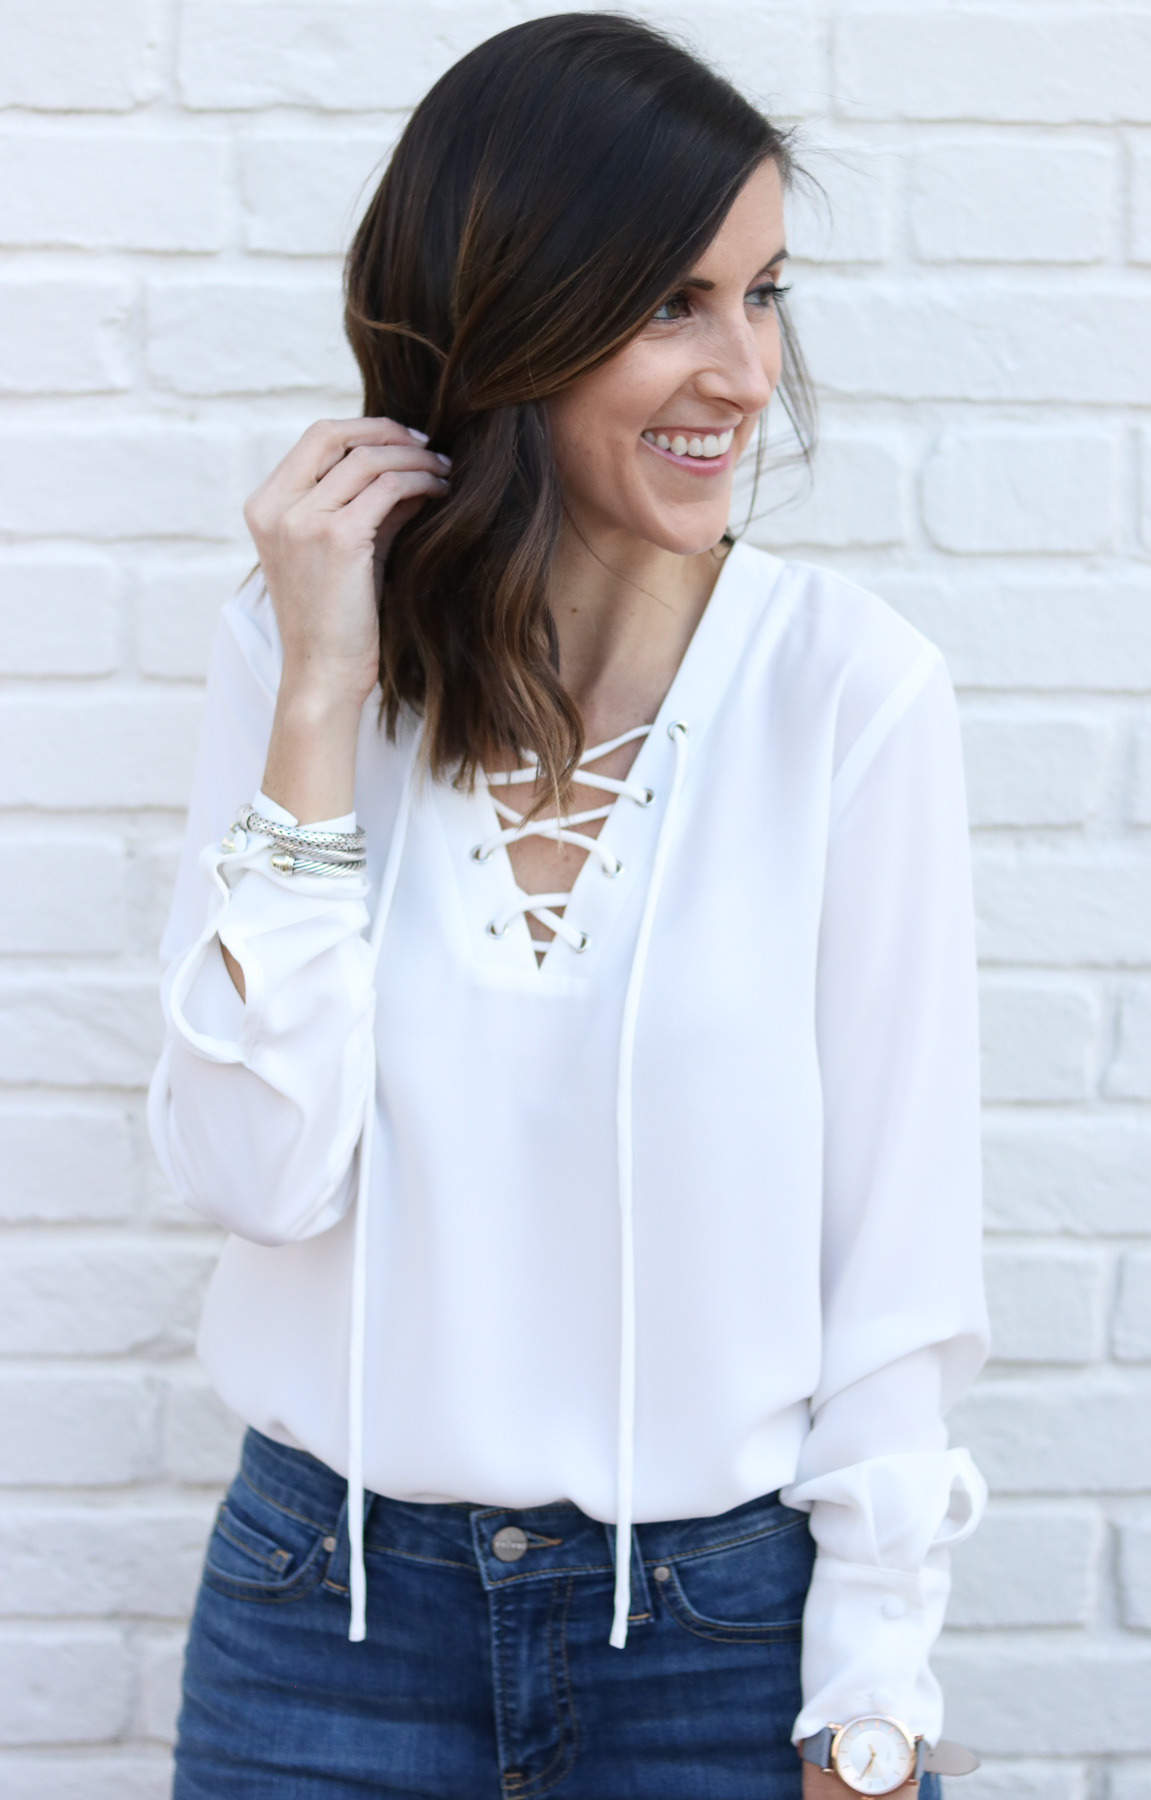 Lace Up Top - Cropped Flare Denim - 70s Style Inspiration @cobaltchronicle